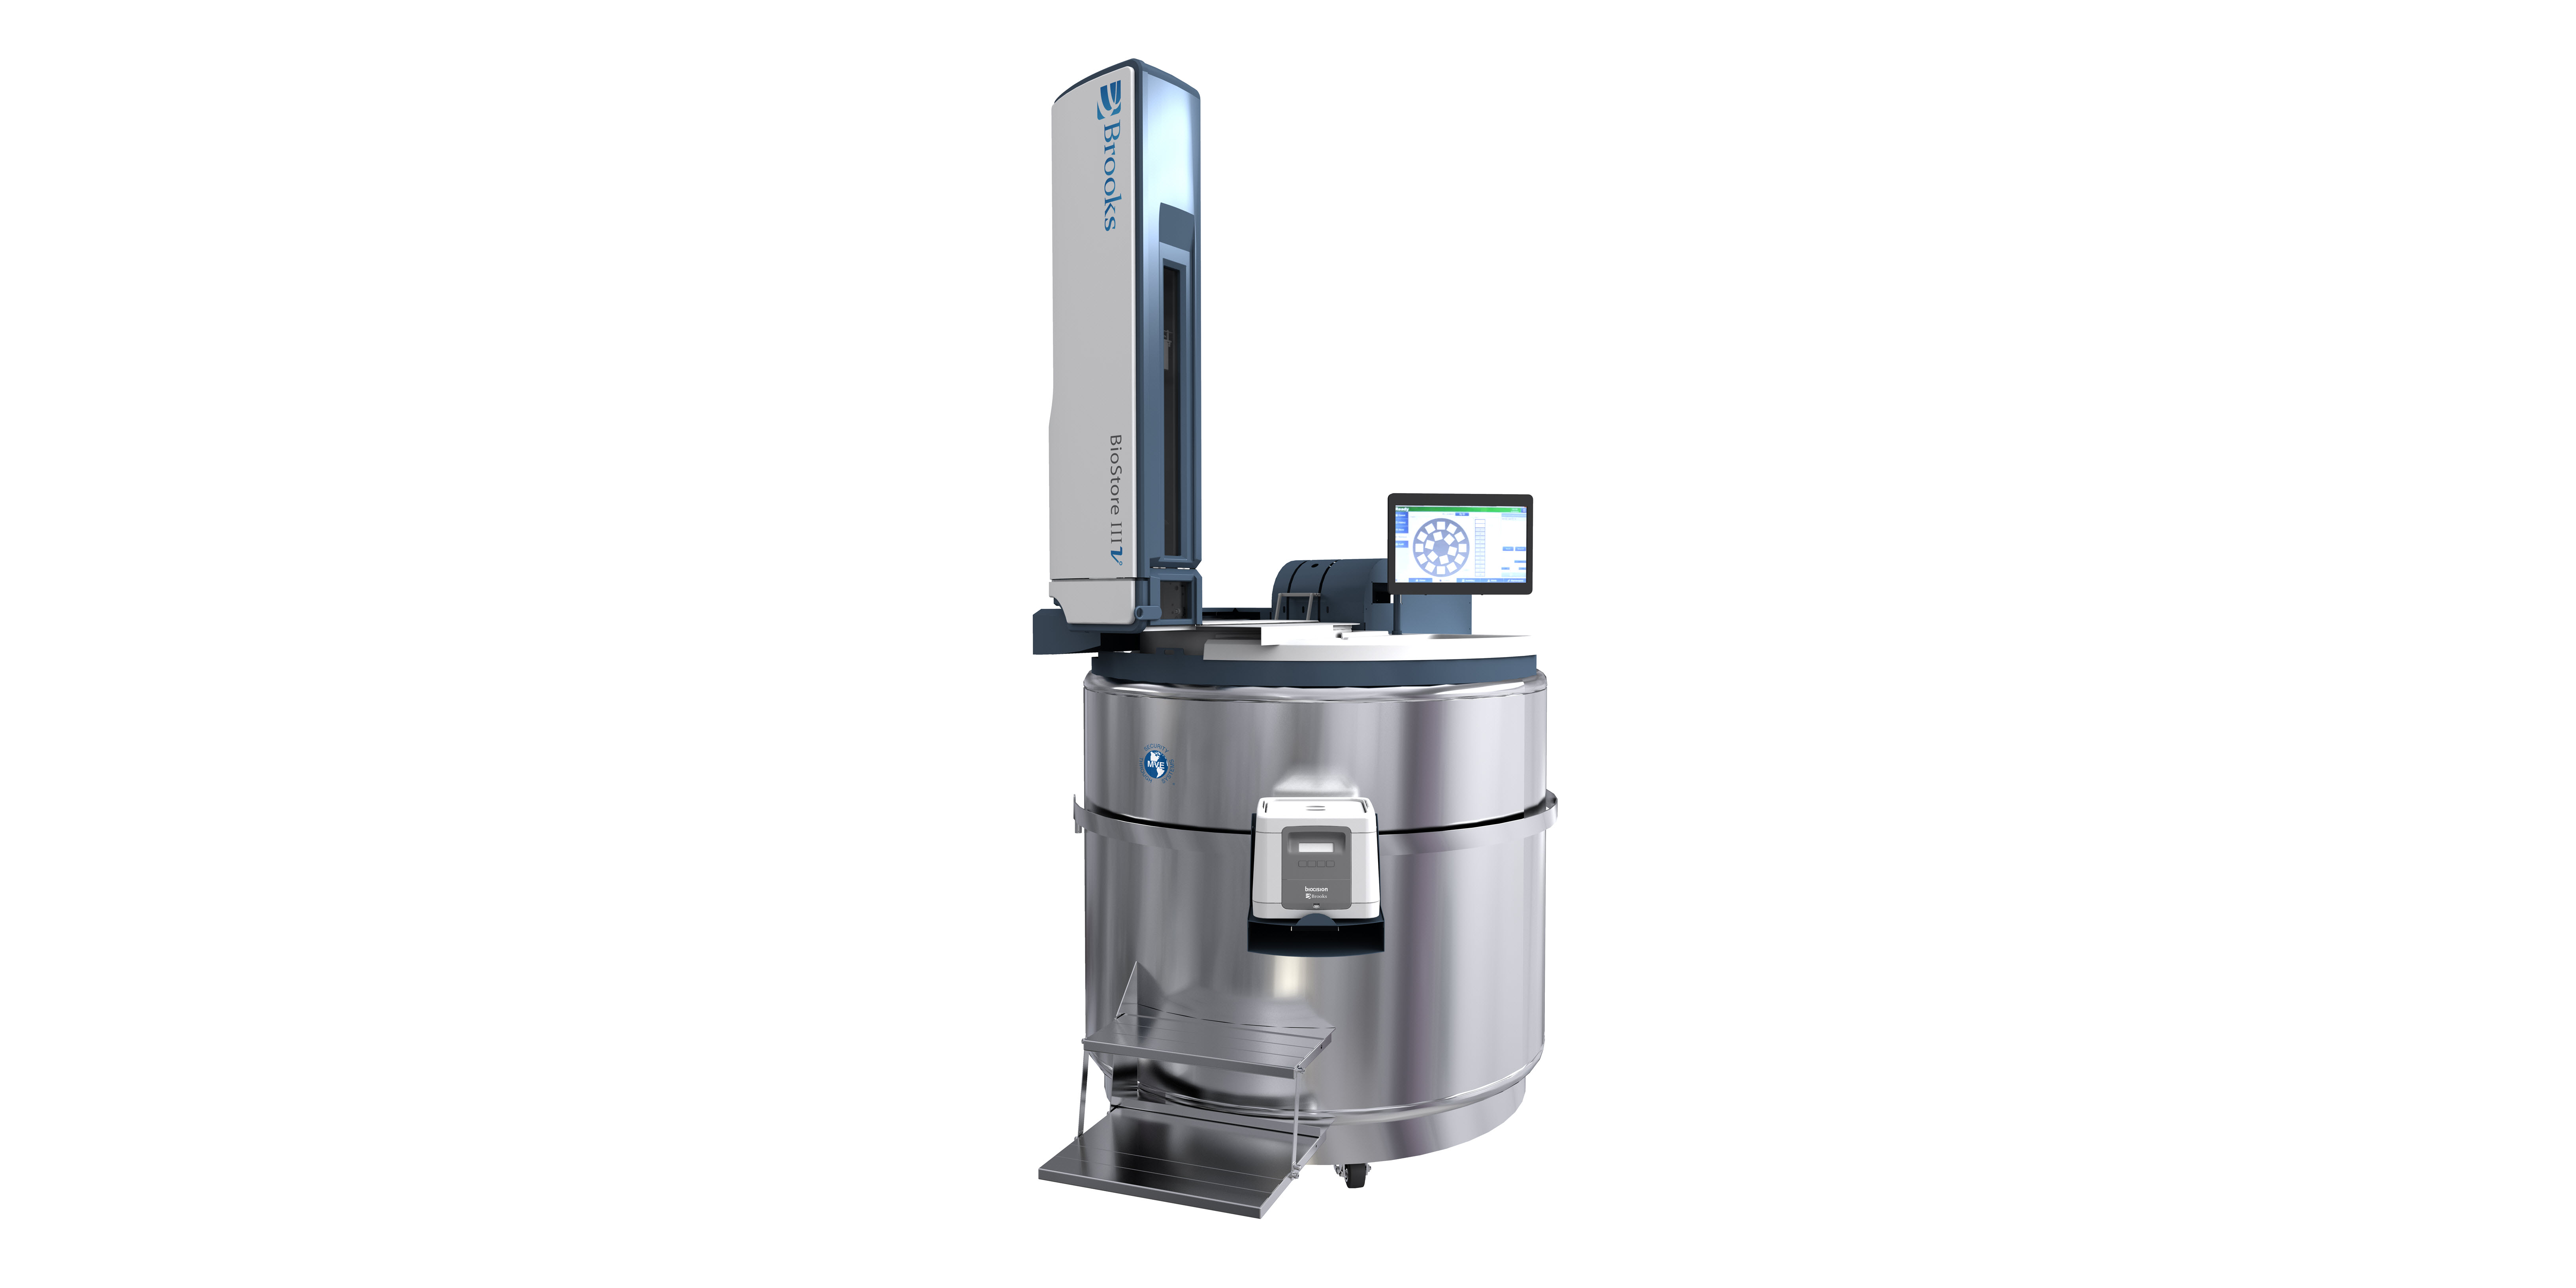 First -80°C Liquid Nitrogen-Based, Automated Storage System to Offer Inventory Control and Reporting Capabilities